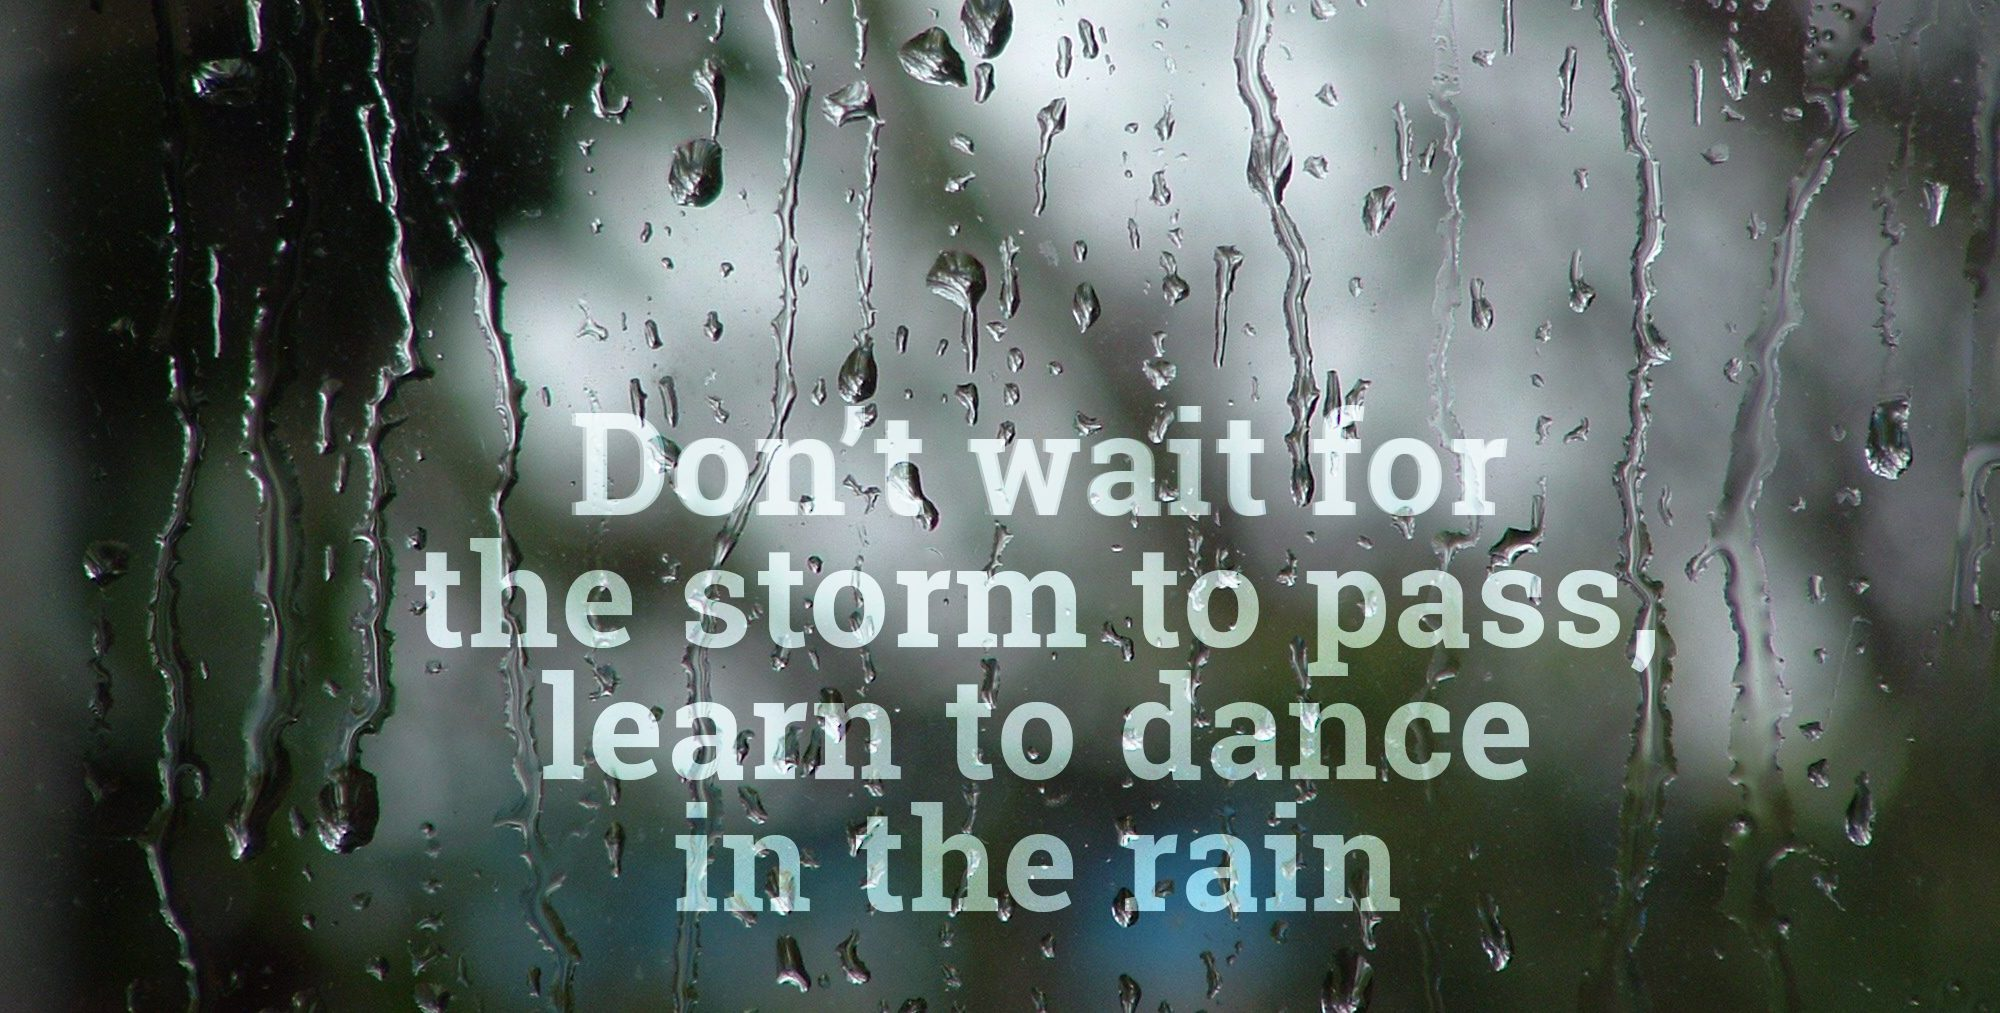 daily inspirational quote image: rain drops on a window